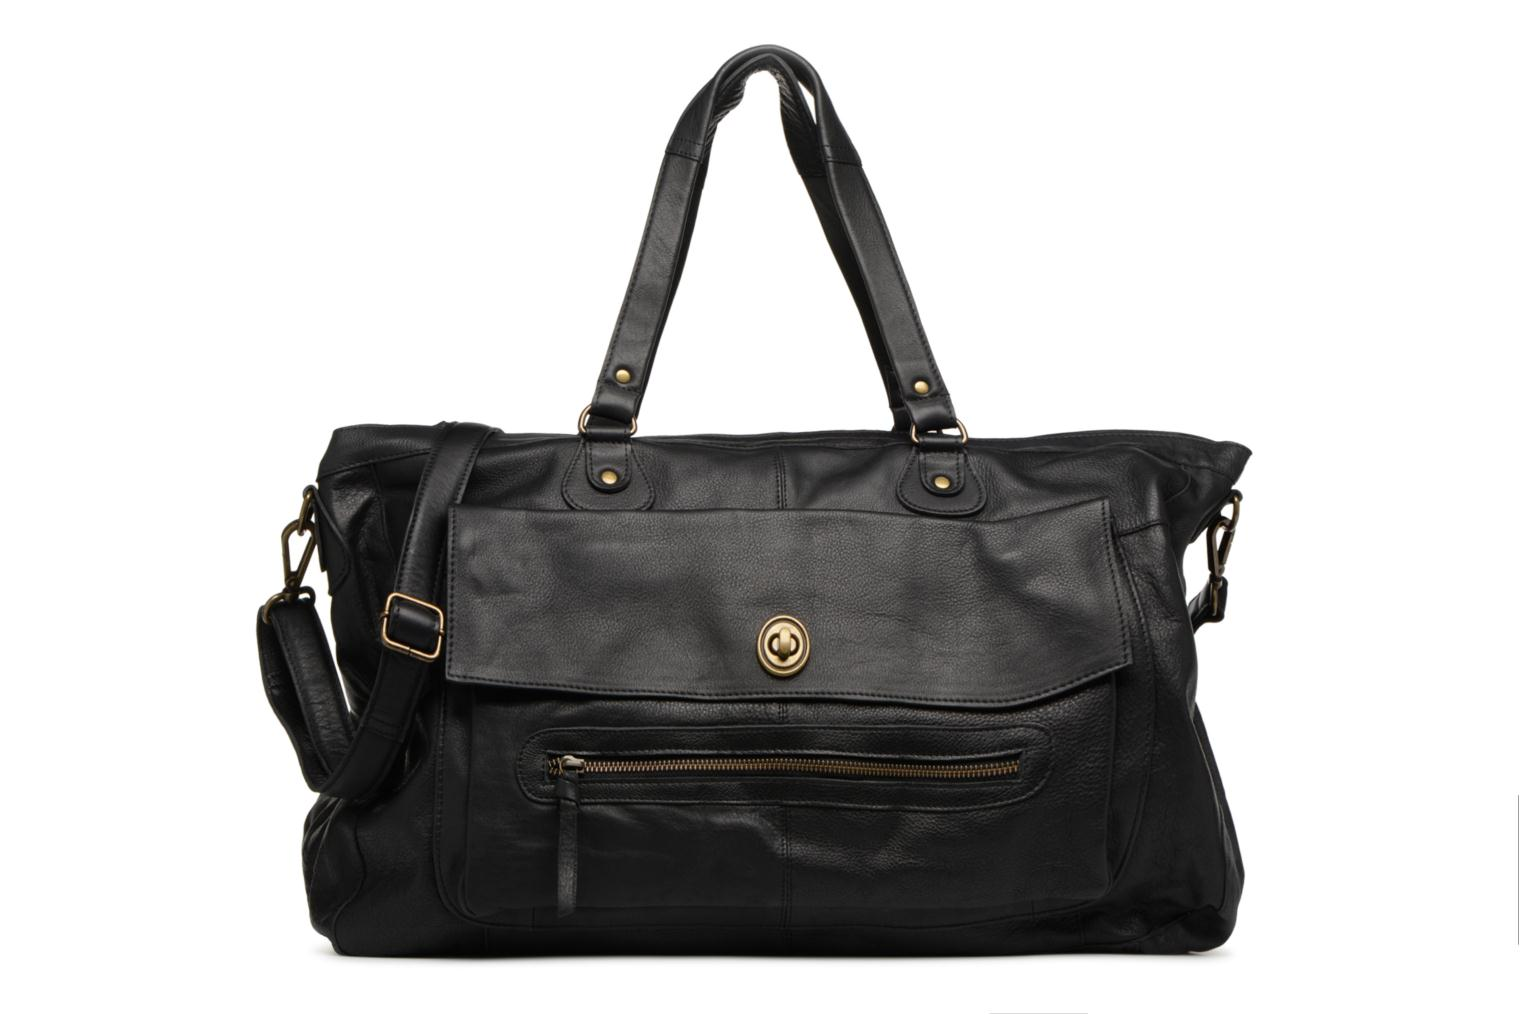 Handtaschen Pieces Totally Royal leather Travel bag schwarz detaillierte ansicht/modell